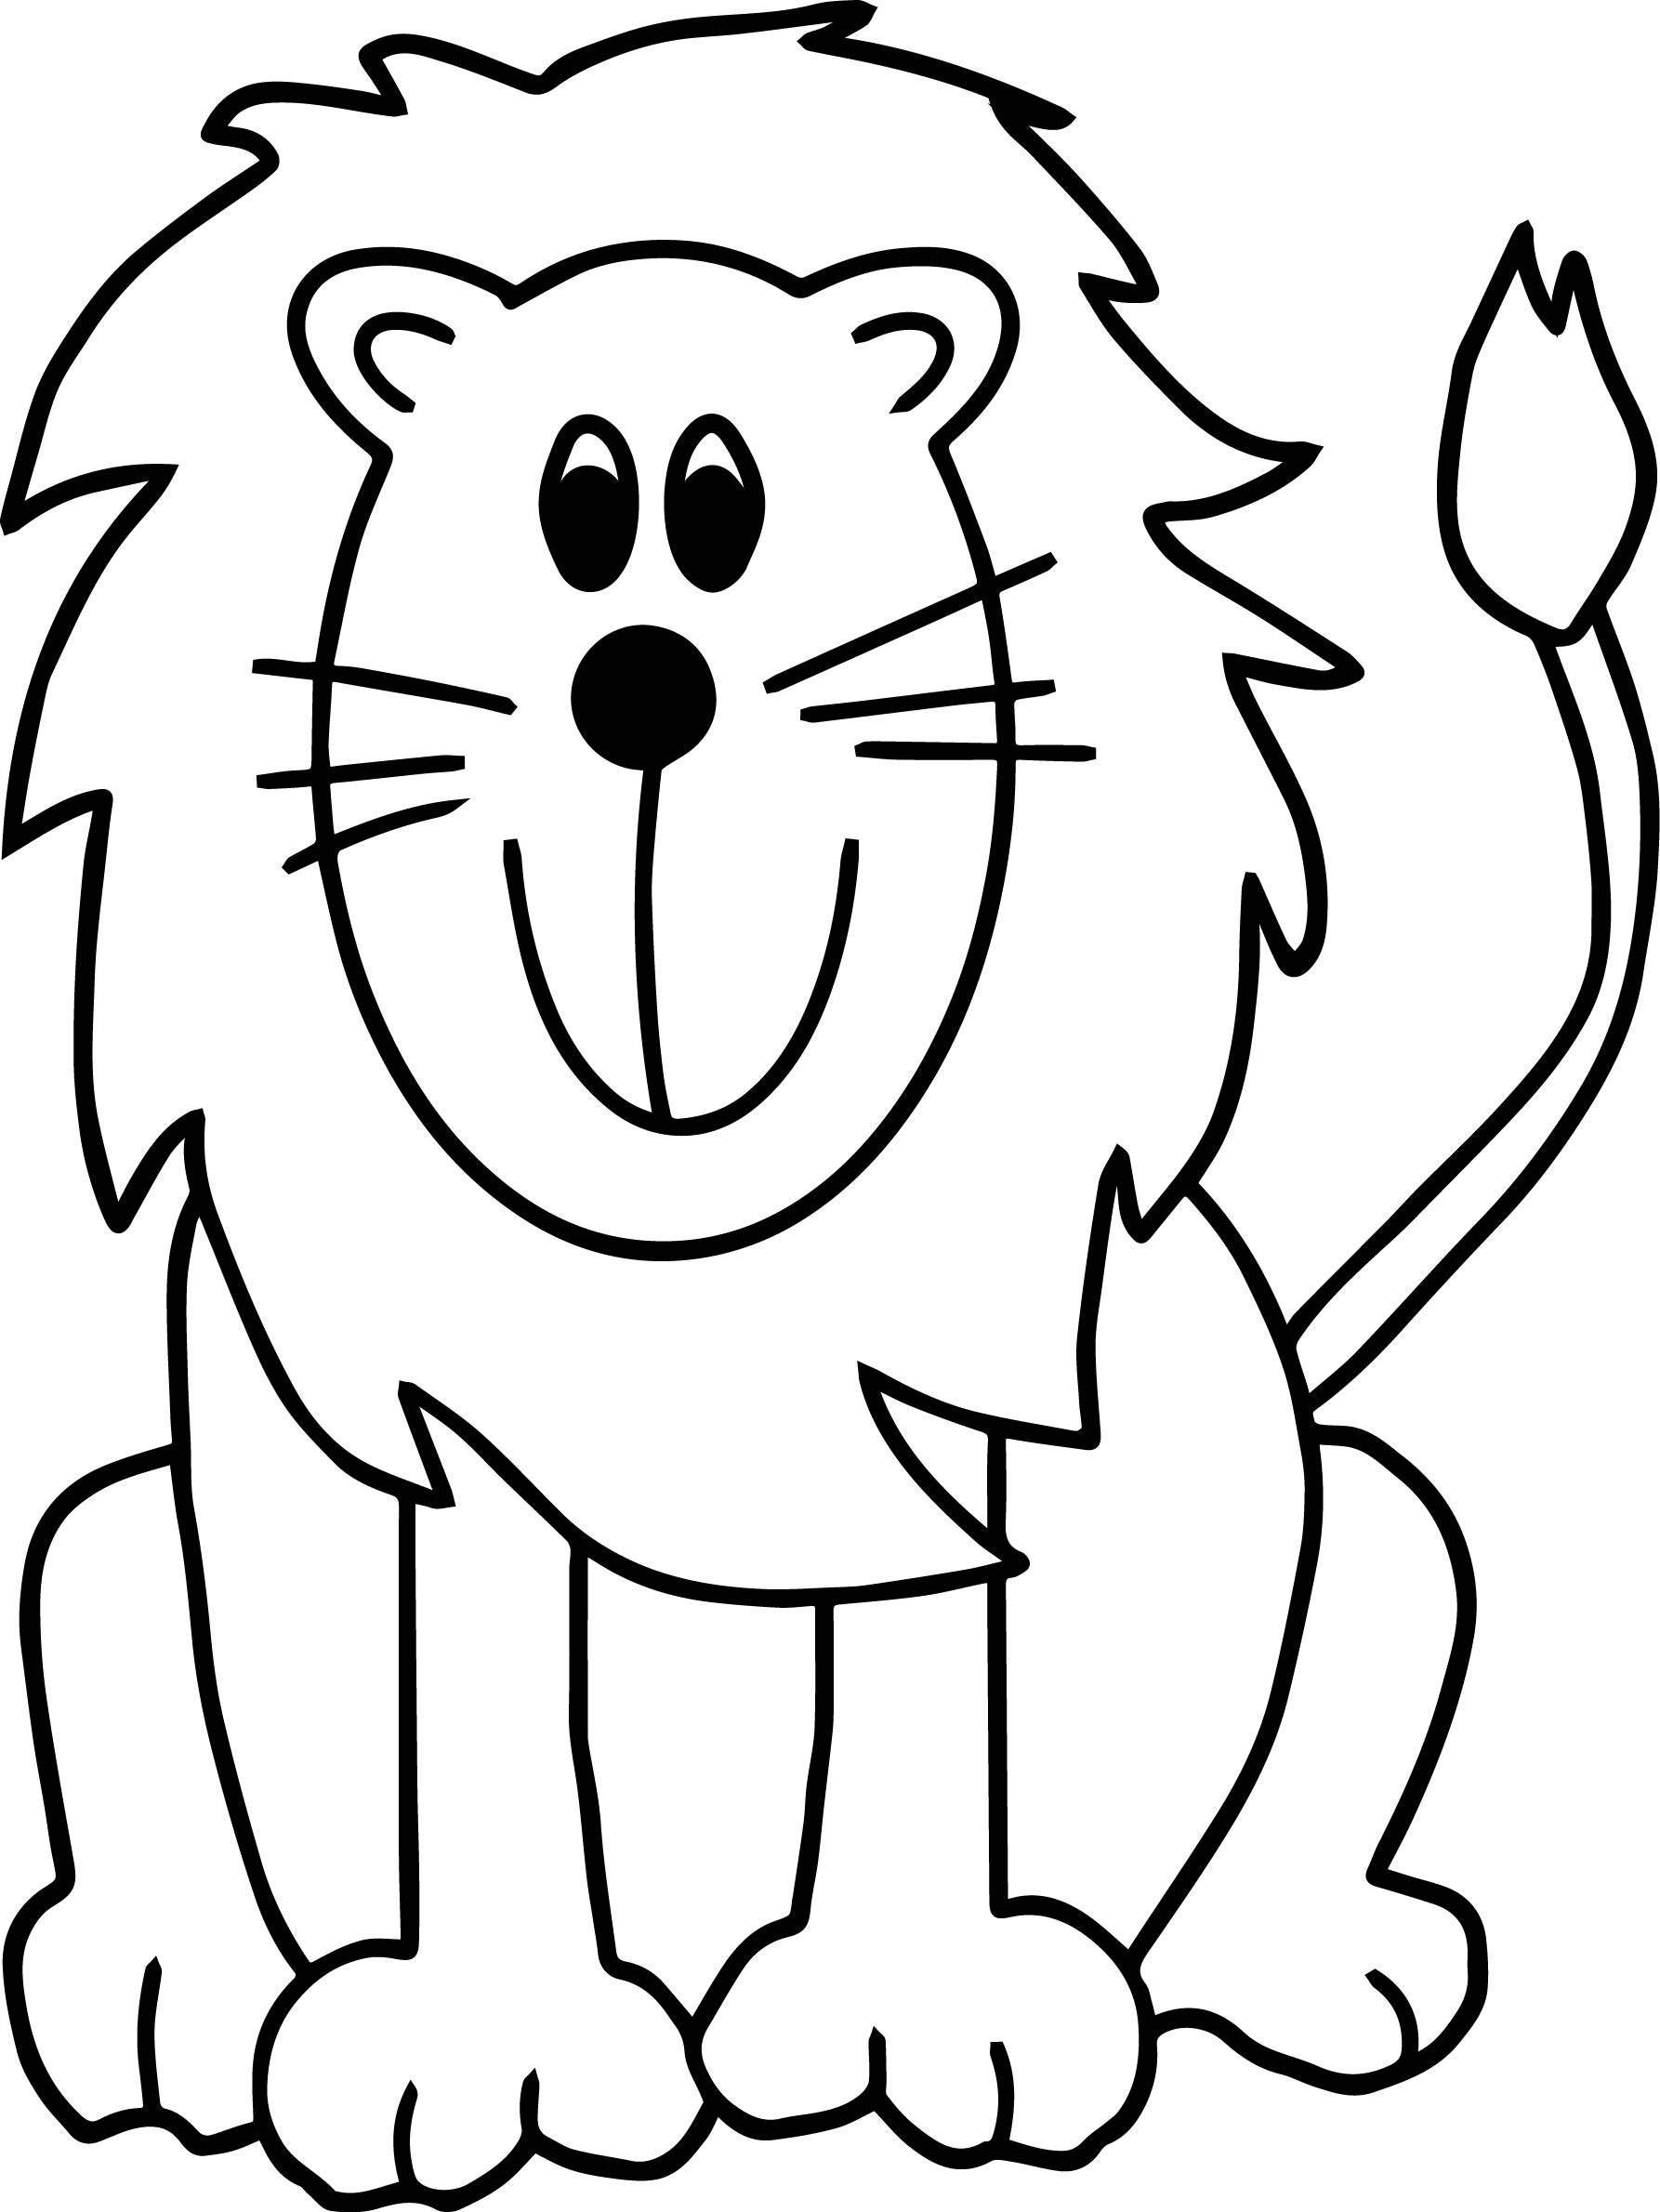 coloring pages zoo zoo coloring pages free download on clipartmag zoo coloring pages